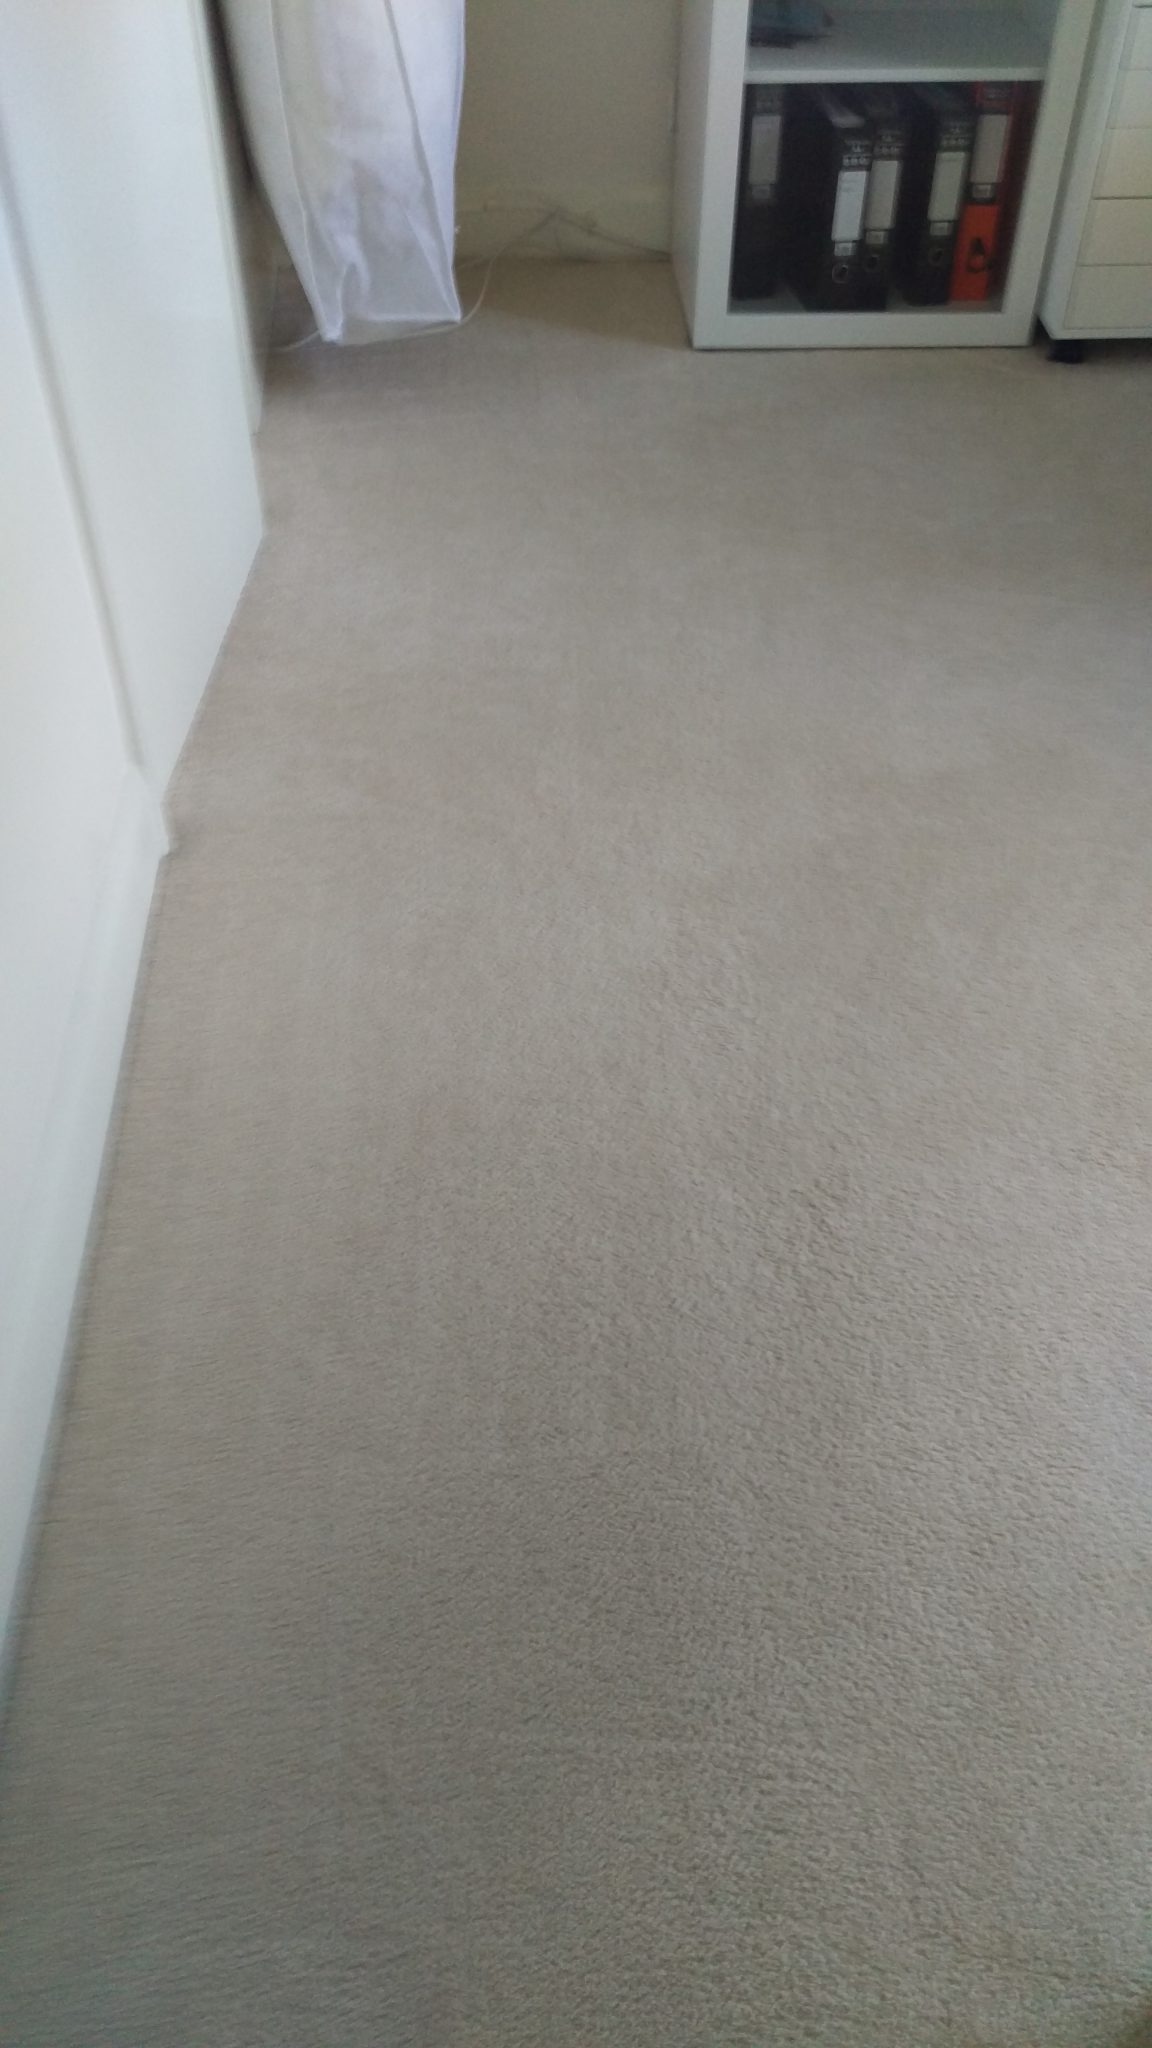 Carpet Cleaning In Croydon Cr0 Postcode Area Shirley